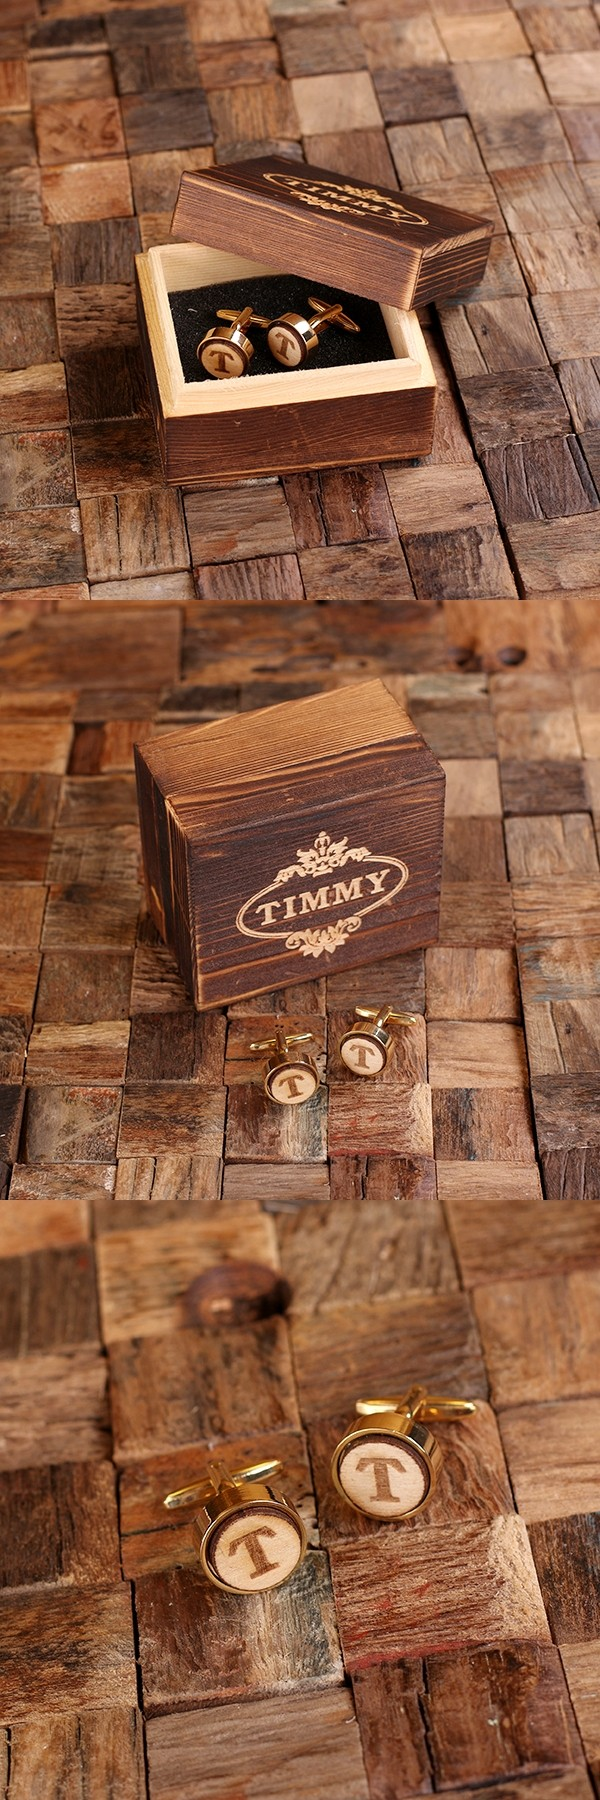 Single Initial Gold-Plated Cuff Links w/ Wood Inserts in Wood Gift-Box